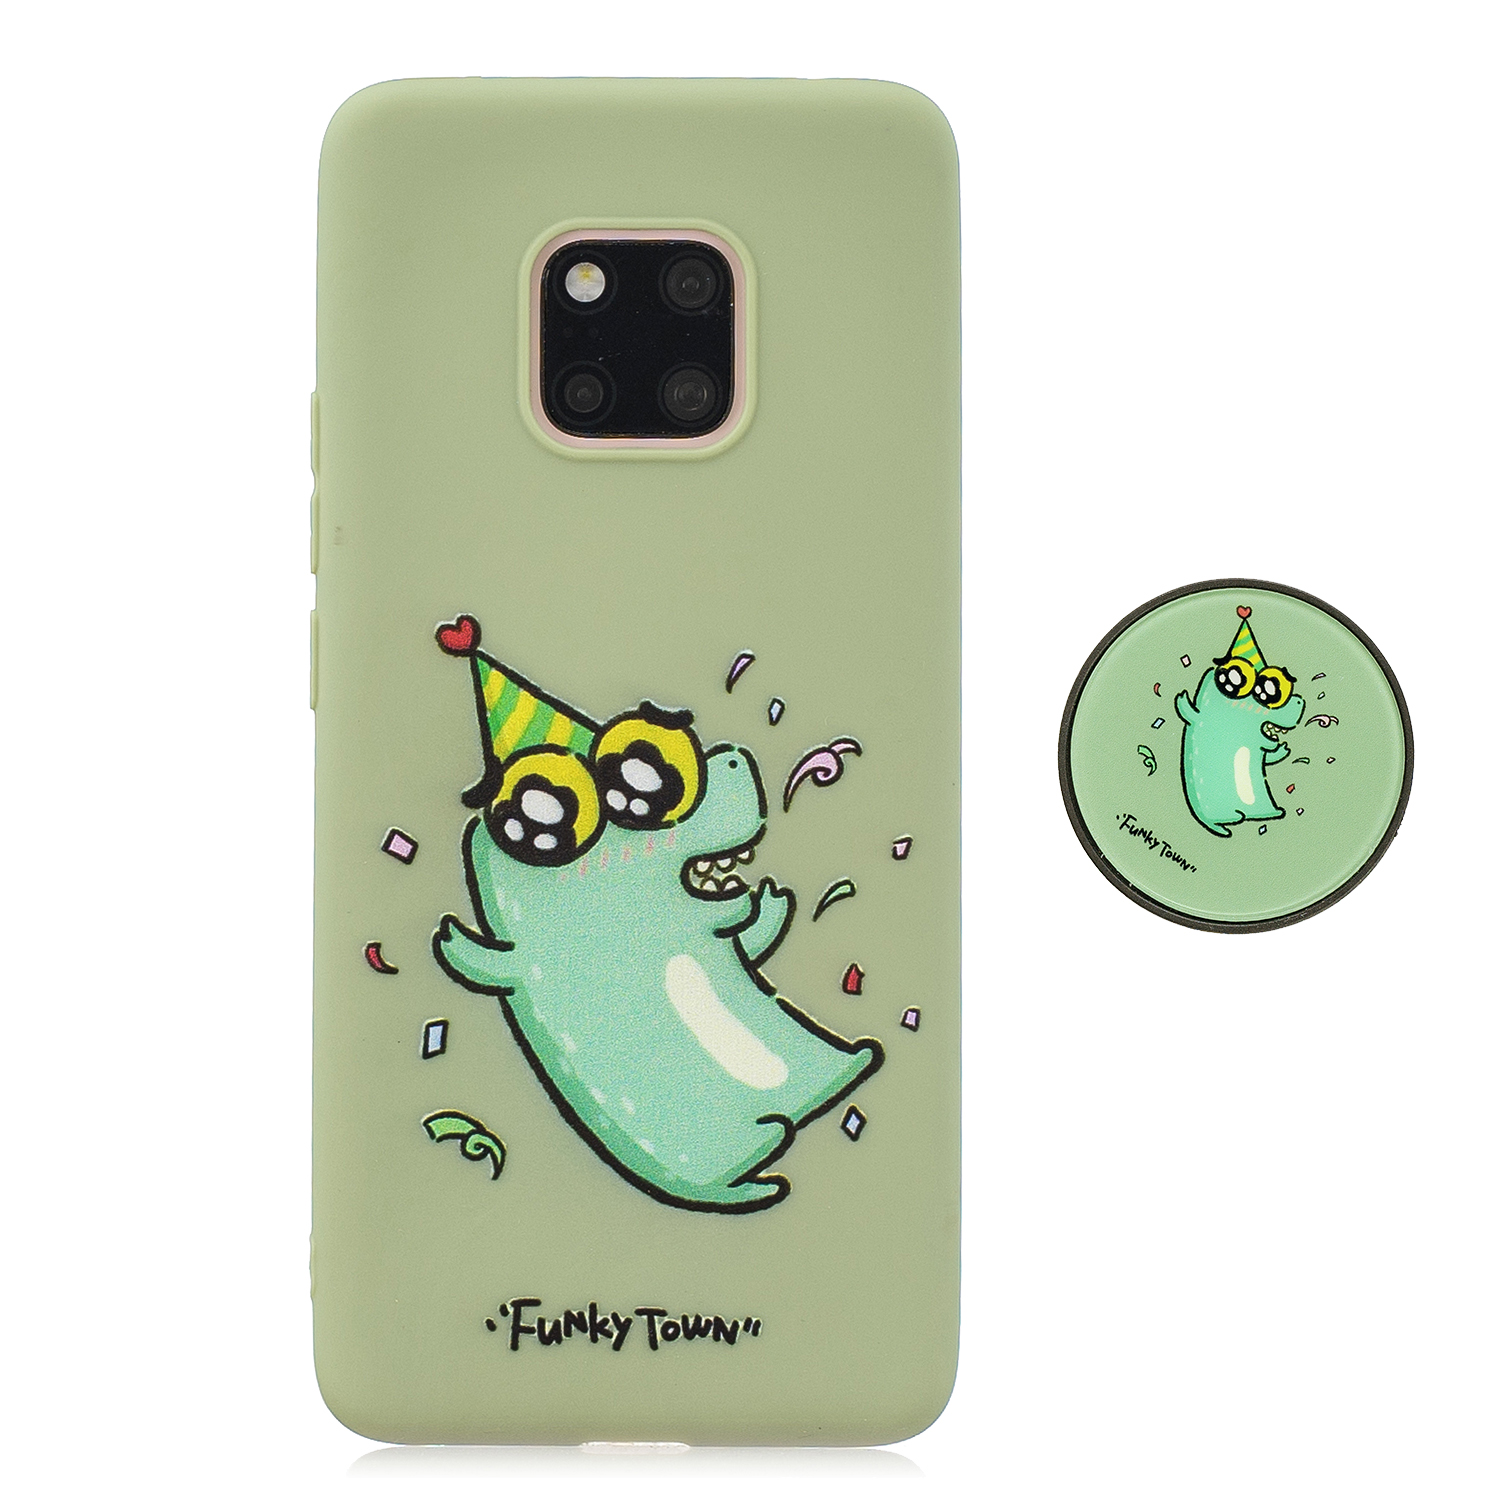 For HUAWEI MATE 20 pro Pure Color Phone Cover Cute Cartoon Phone Case Lightweight Soft TPU Phone Case with Matching Pattern Adjustable Bracket 2